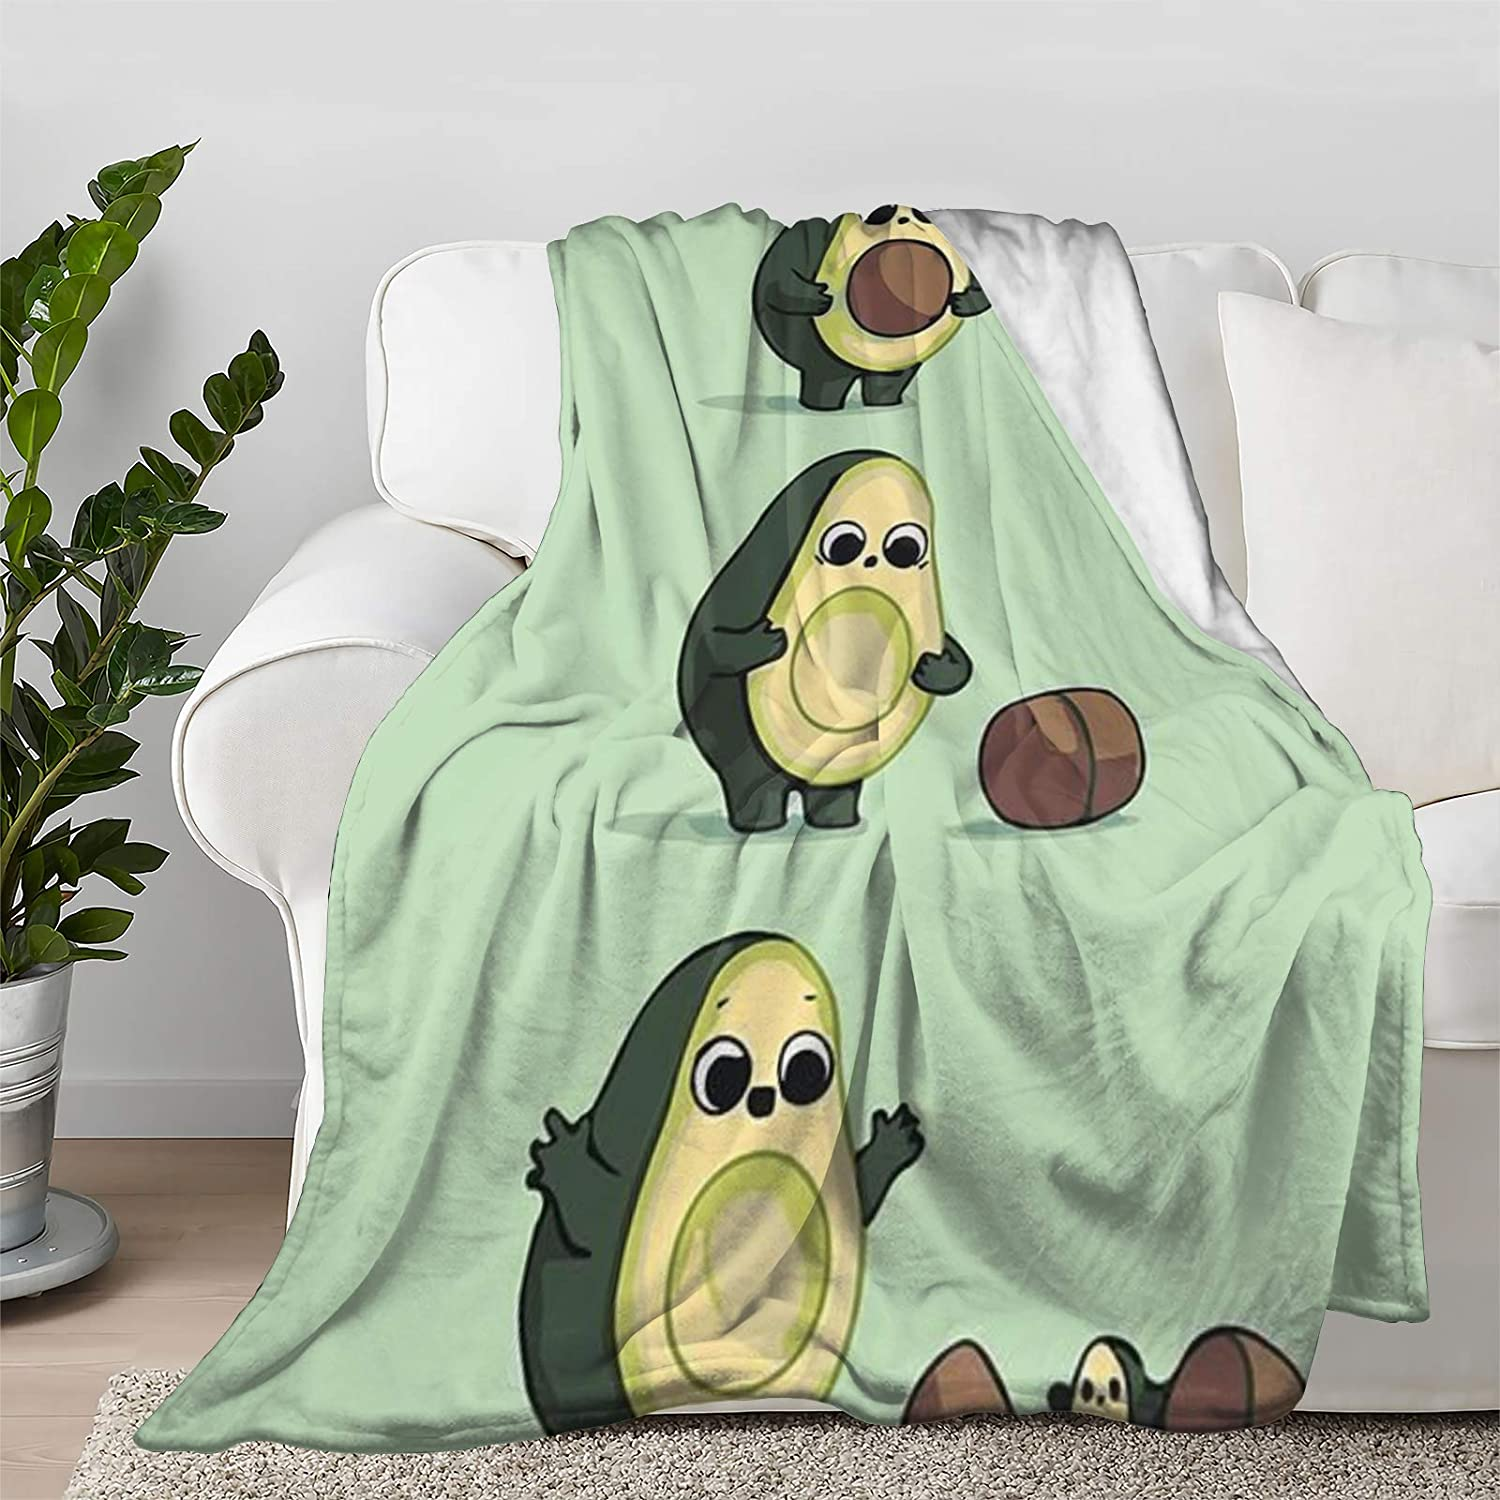 Lokapala Multi-Styles List price Popular products Avocado Mother Flannel So Baby and